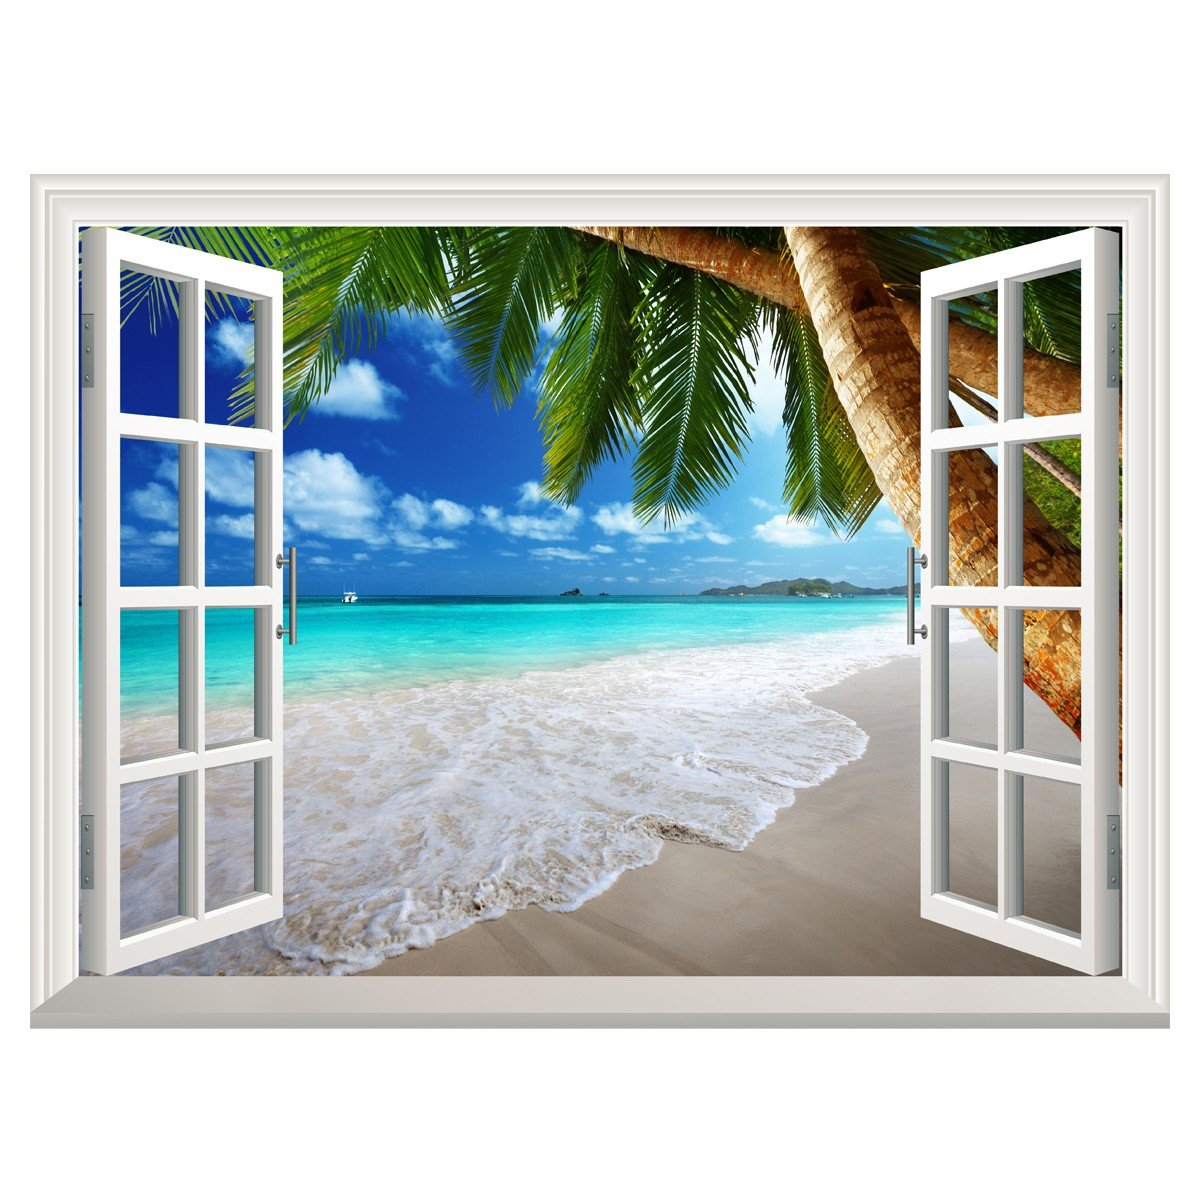 Uniquebella 3D Wall Murals Fake Window Decal Tropical Beach with Palm tree Creative Mural Home Decor 45''x60''